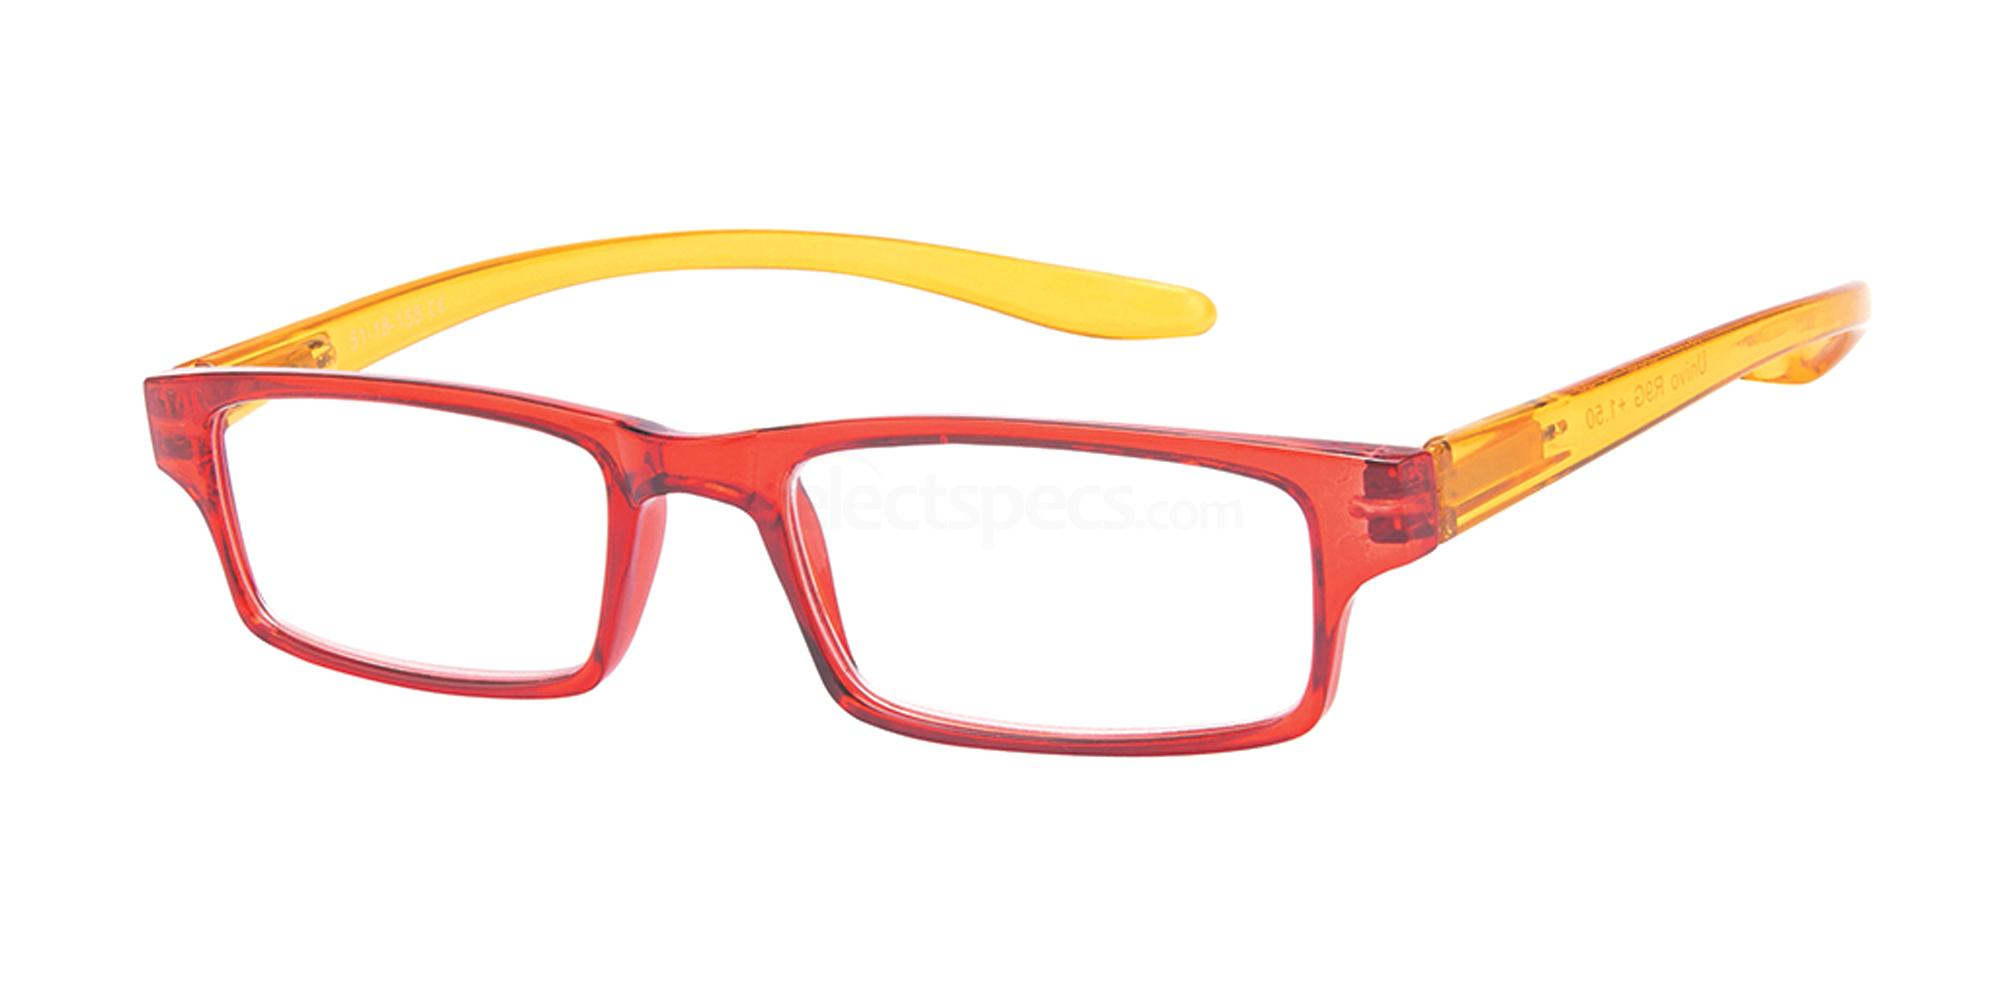 +1.00 Power Reading R9 - G: Red / Yellow Accessories, Univo Readers